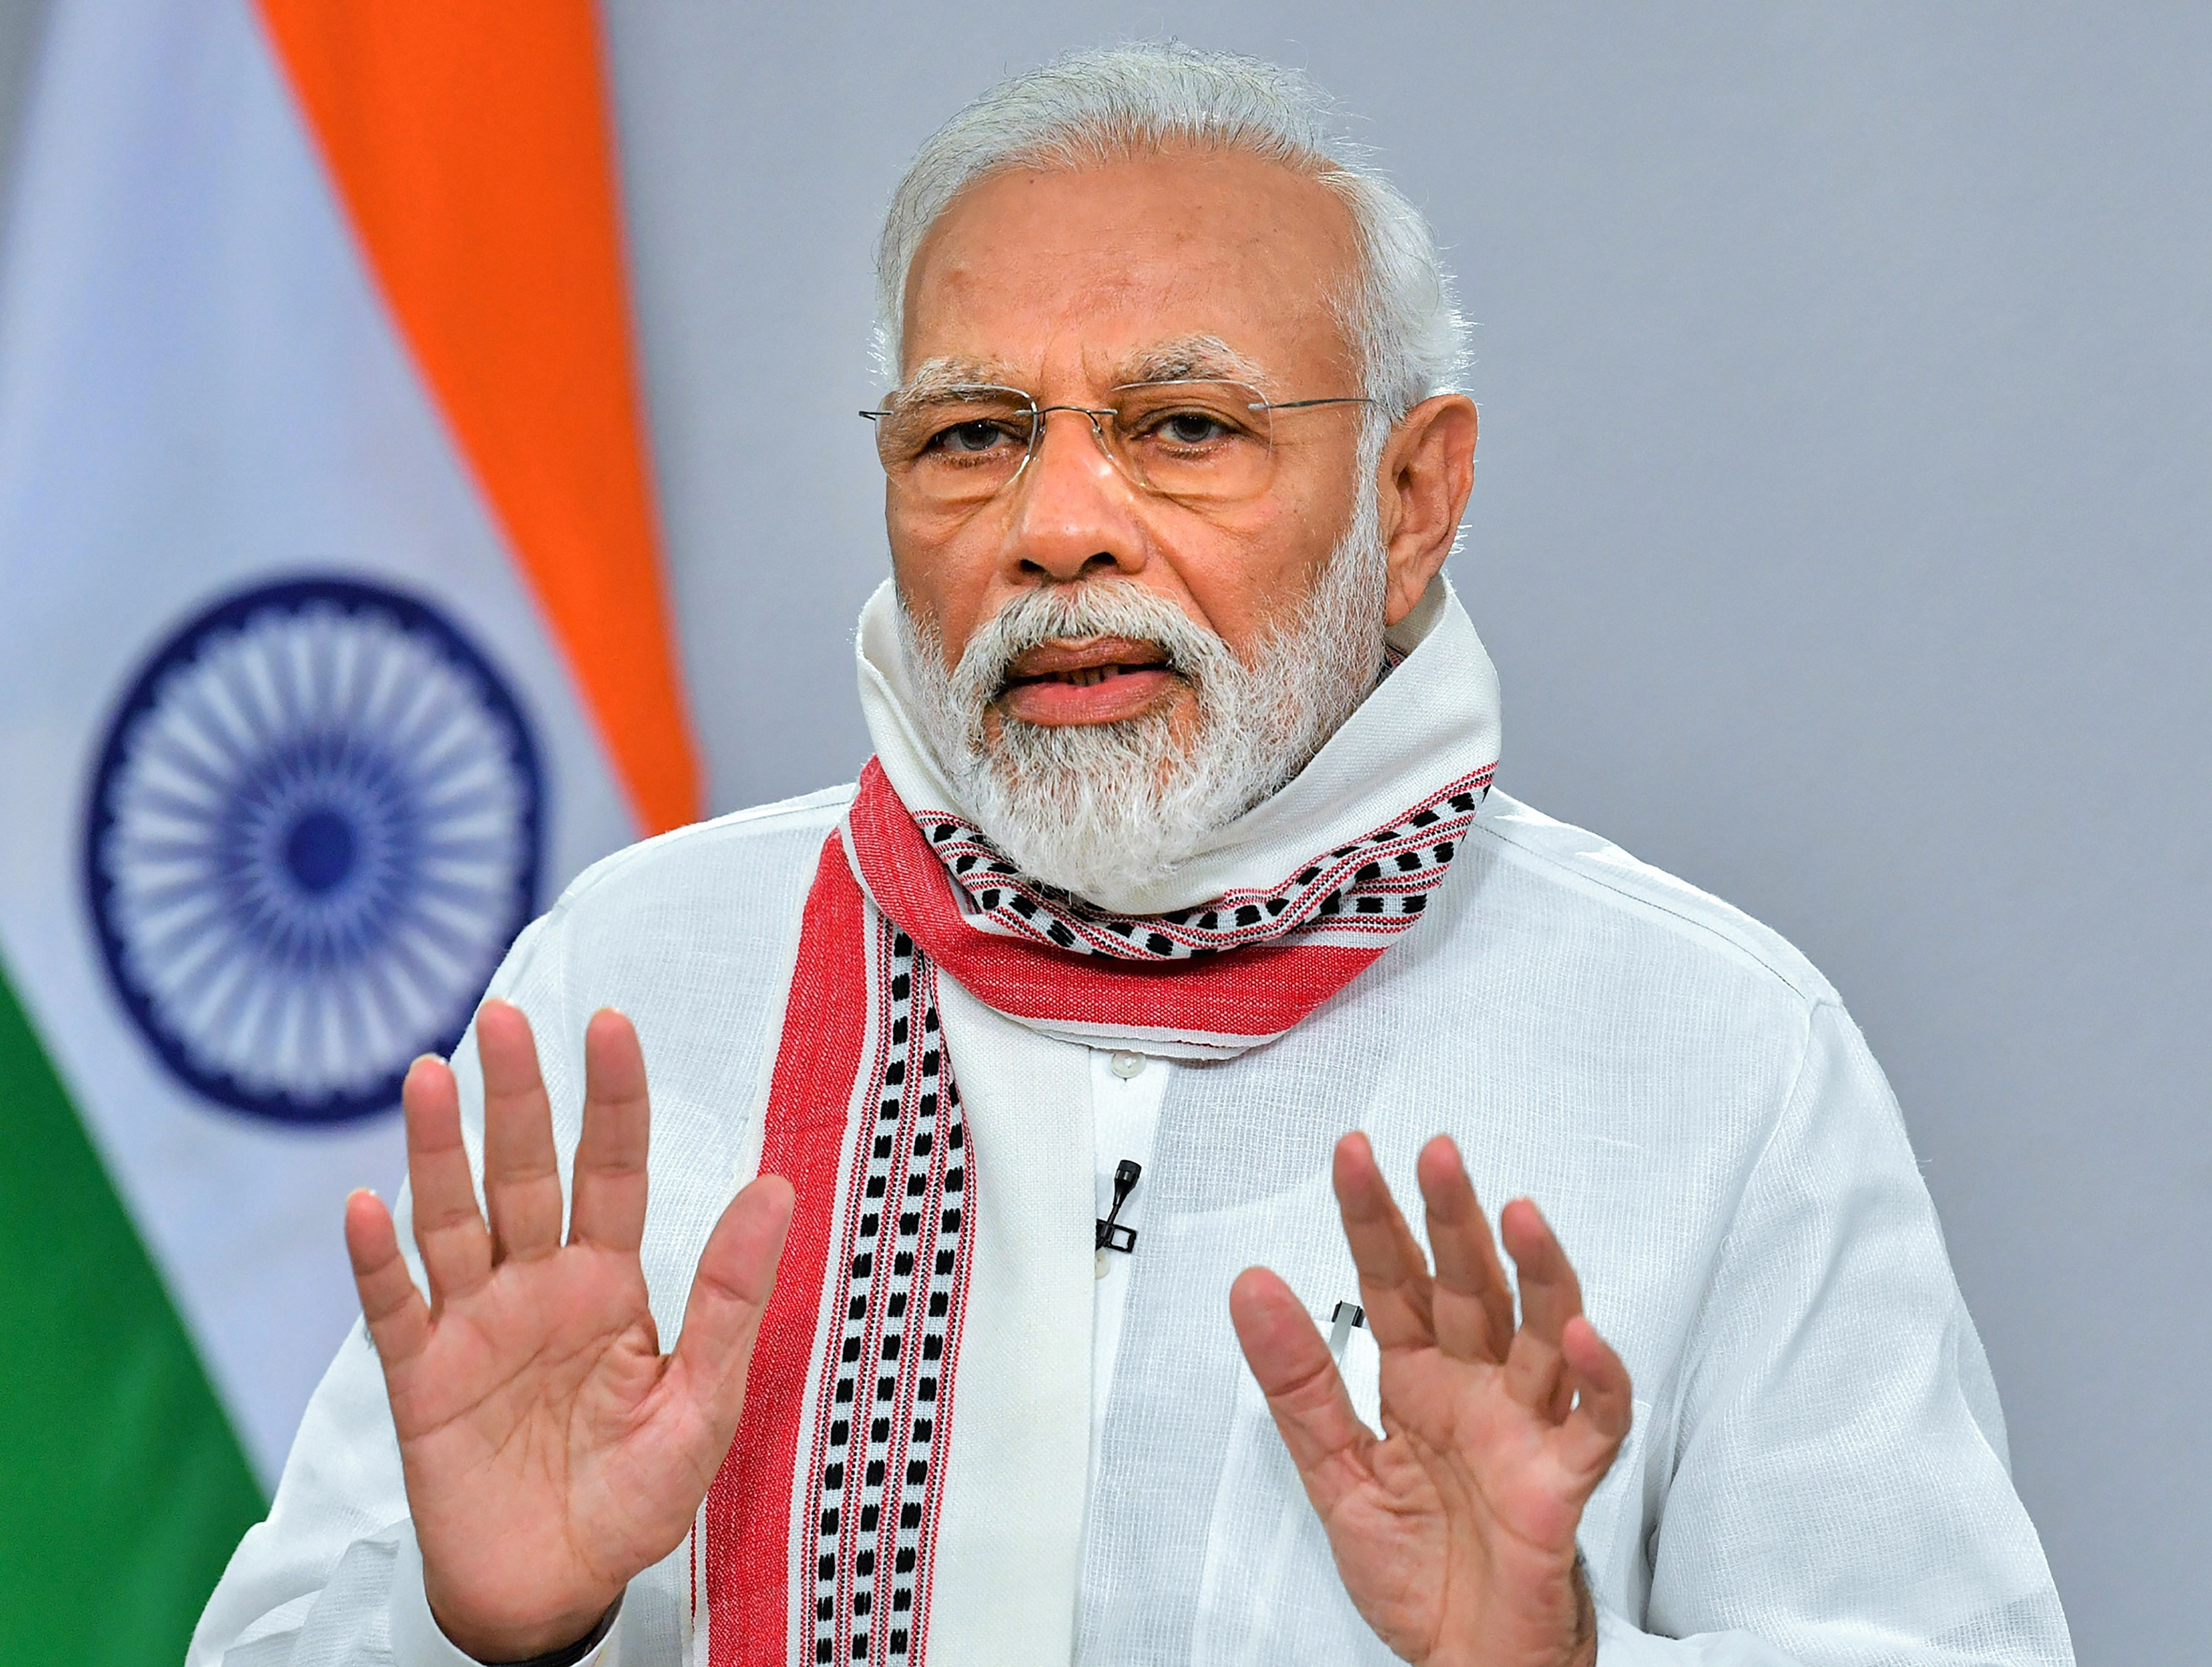 Prime Minister Narendra Modi addresses the nation on COVID-19 via a video link, in New Delhi, Tuesday, April 14, 2020. PM Modi announced extension of the ongoing lockdown till May 3.